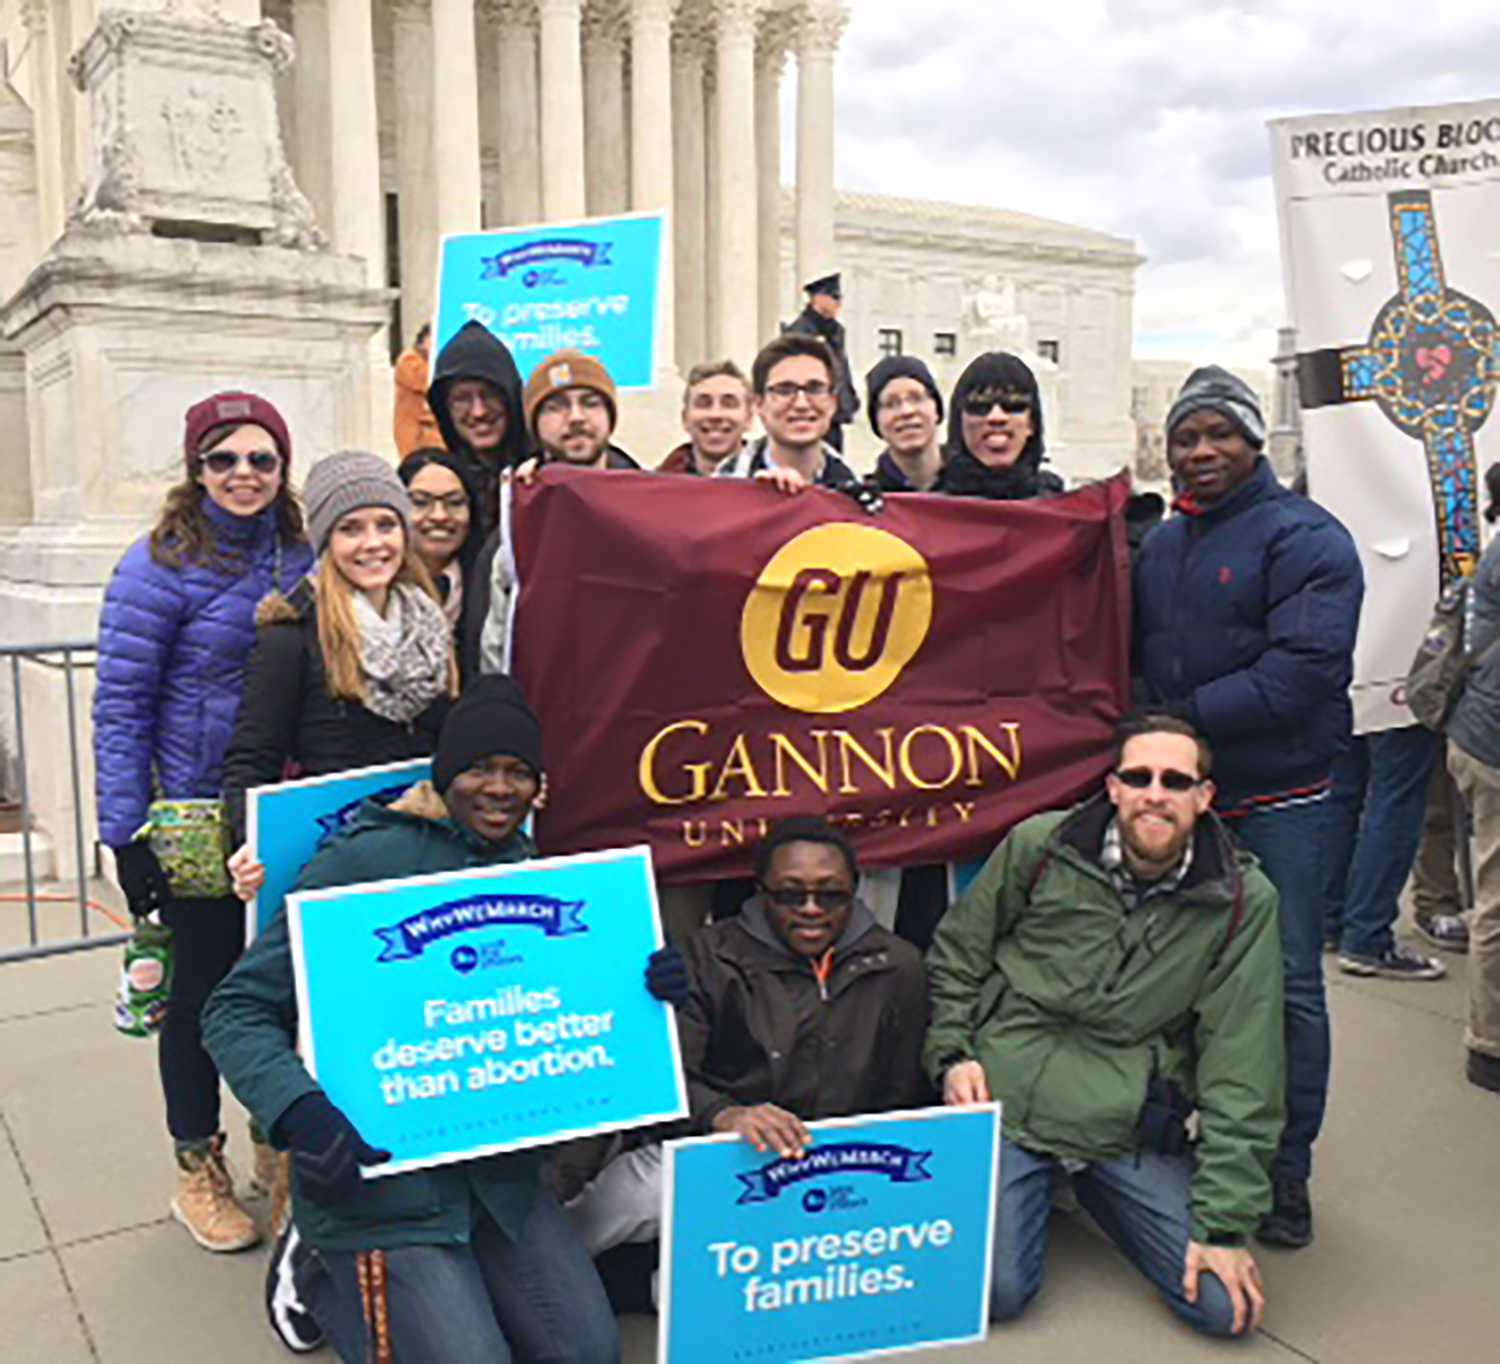 Finding God on Gannon's campus: Students travel to D.C. for 44th annual March for Life